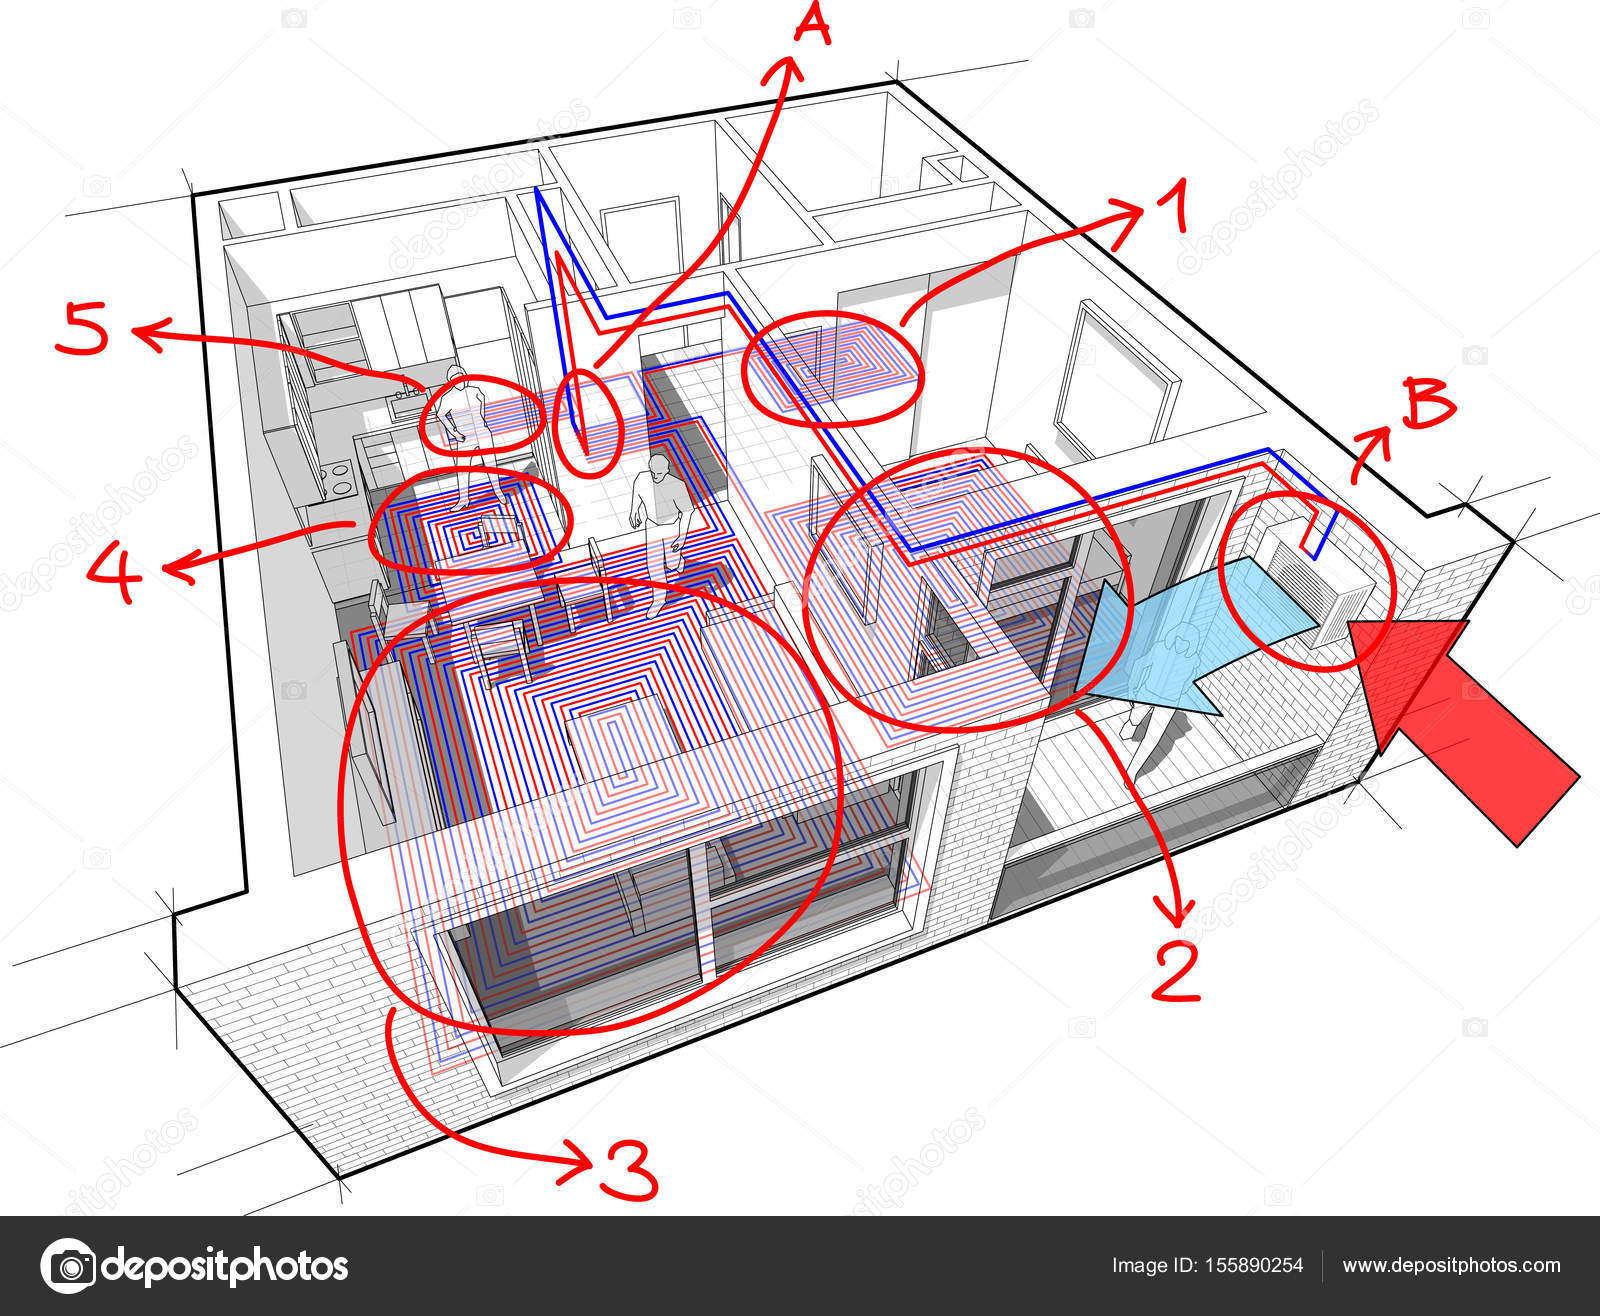 hight resolution of perspective cutaway diagram of a one bedroom apartment completely furnished with hot water underfloor heating and gas water boiler as source of energy for